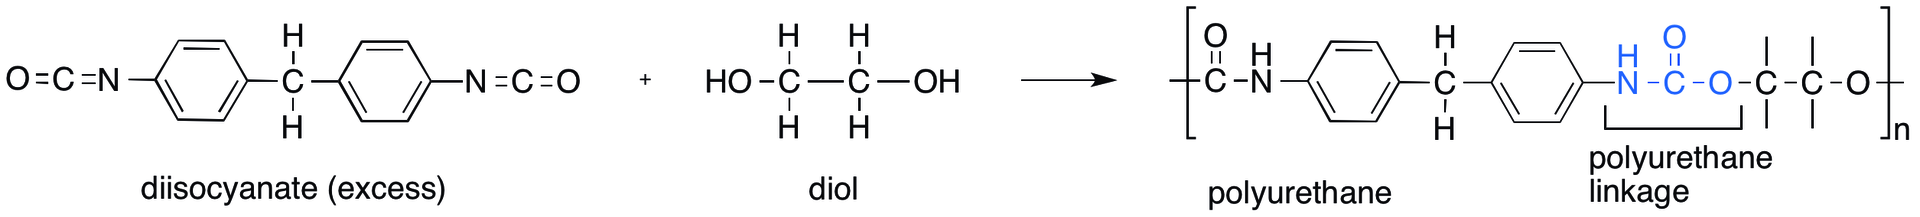 Key Difference - Isocyanate vs Diisocyanate